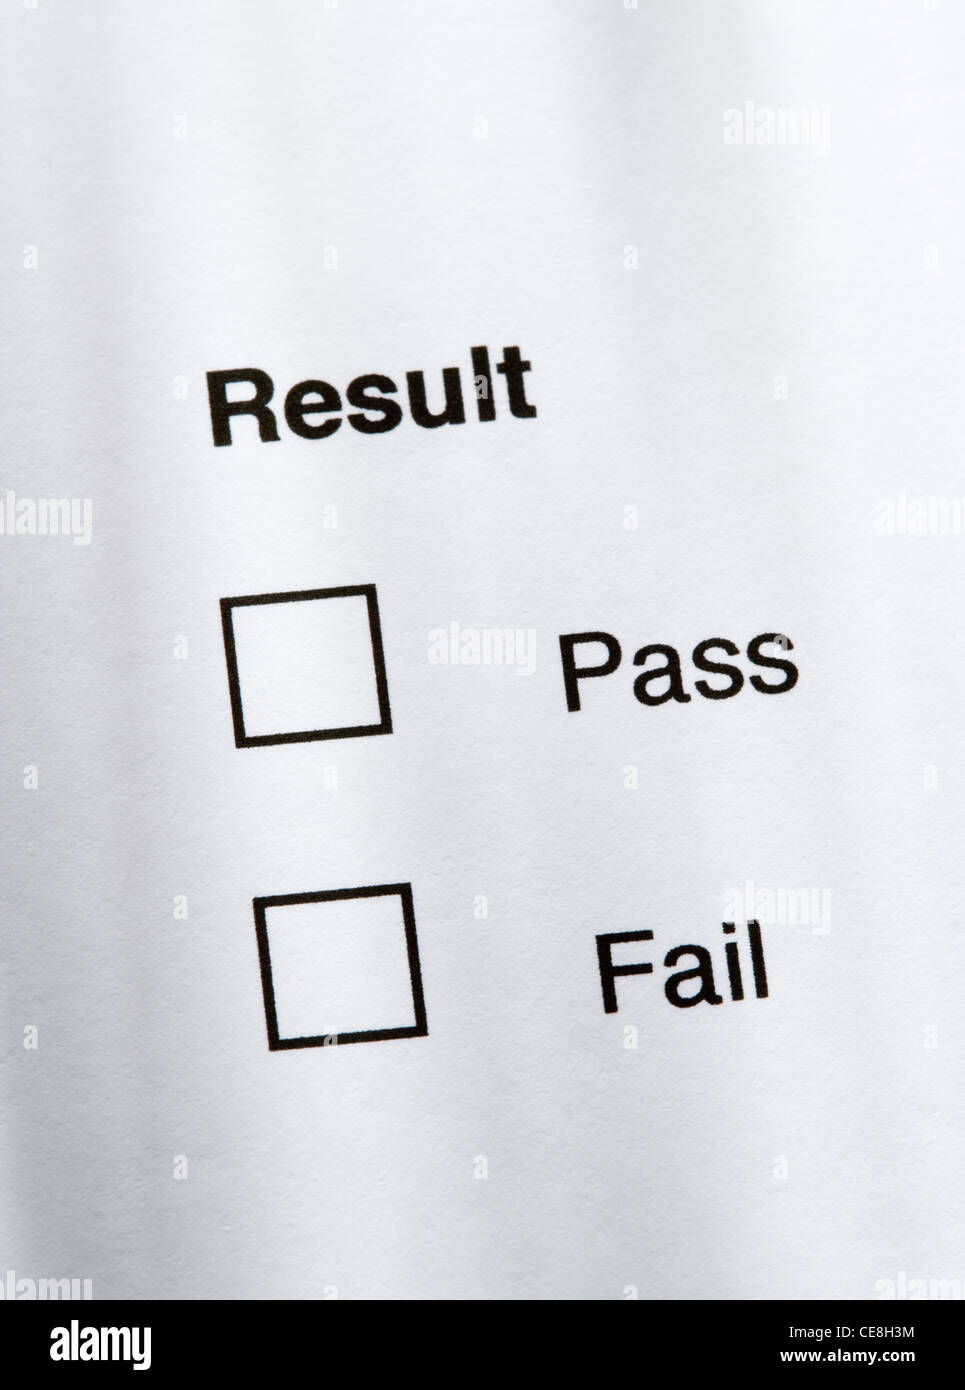 Result - pass or fail. - Stock Image